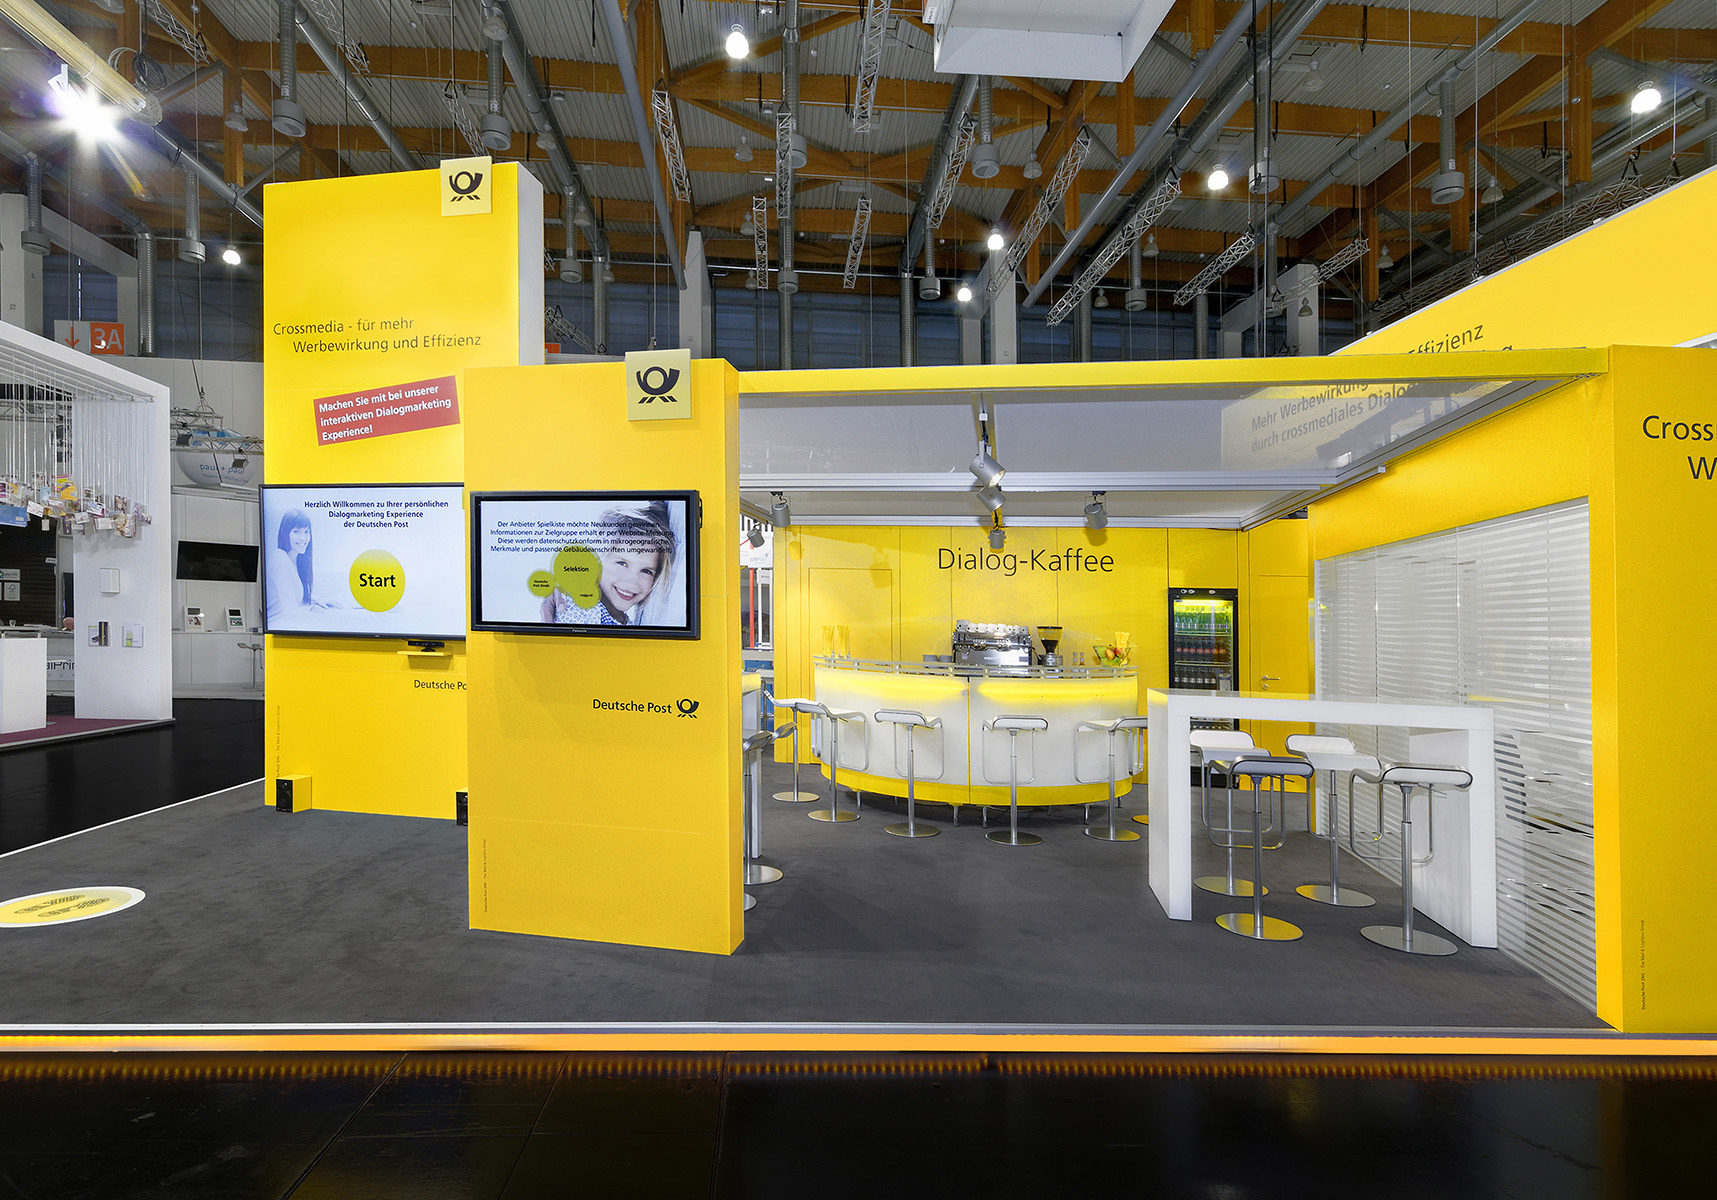 Messestand von Deutsche Post